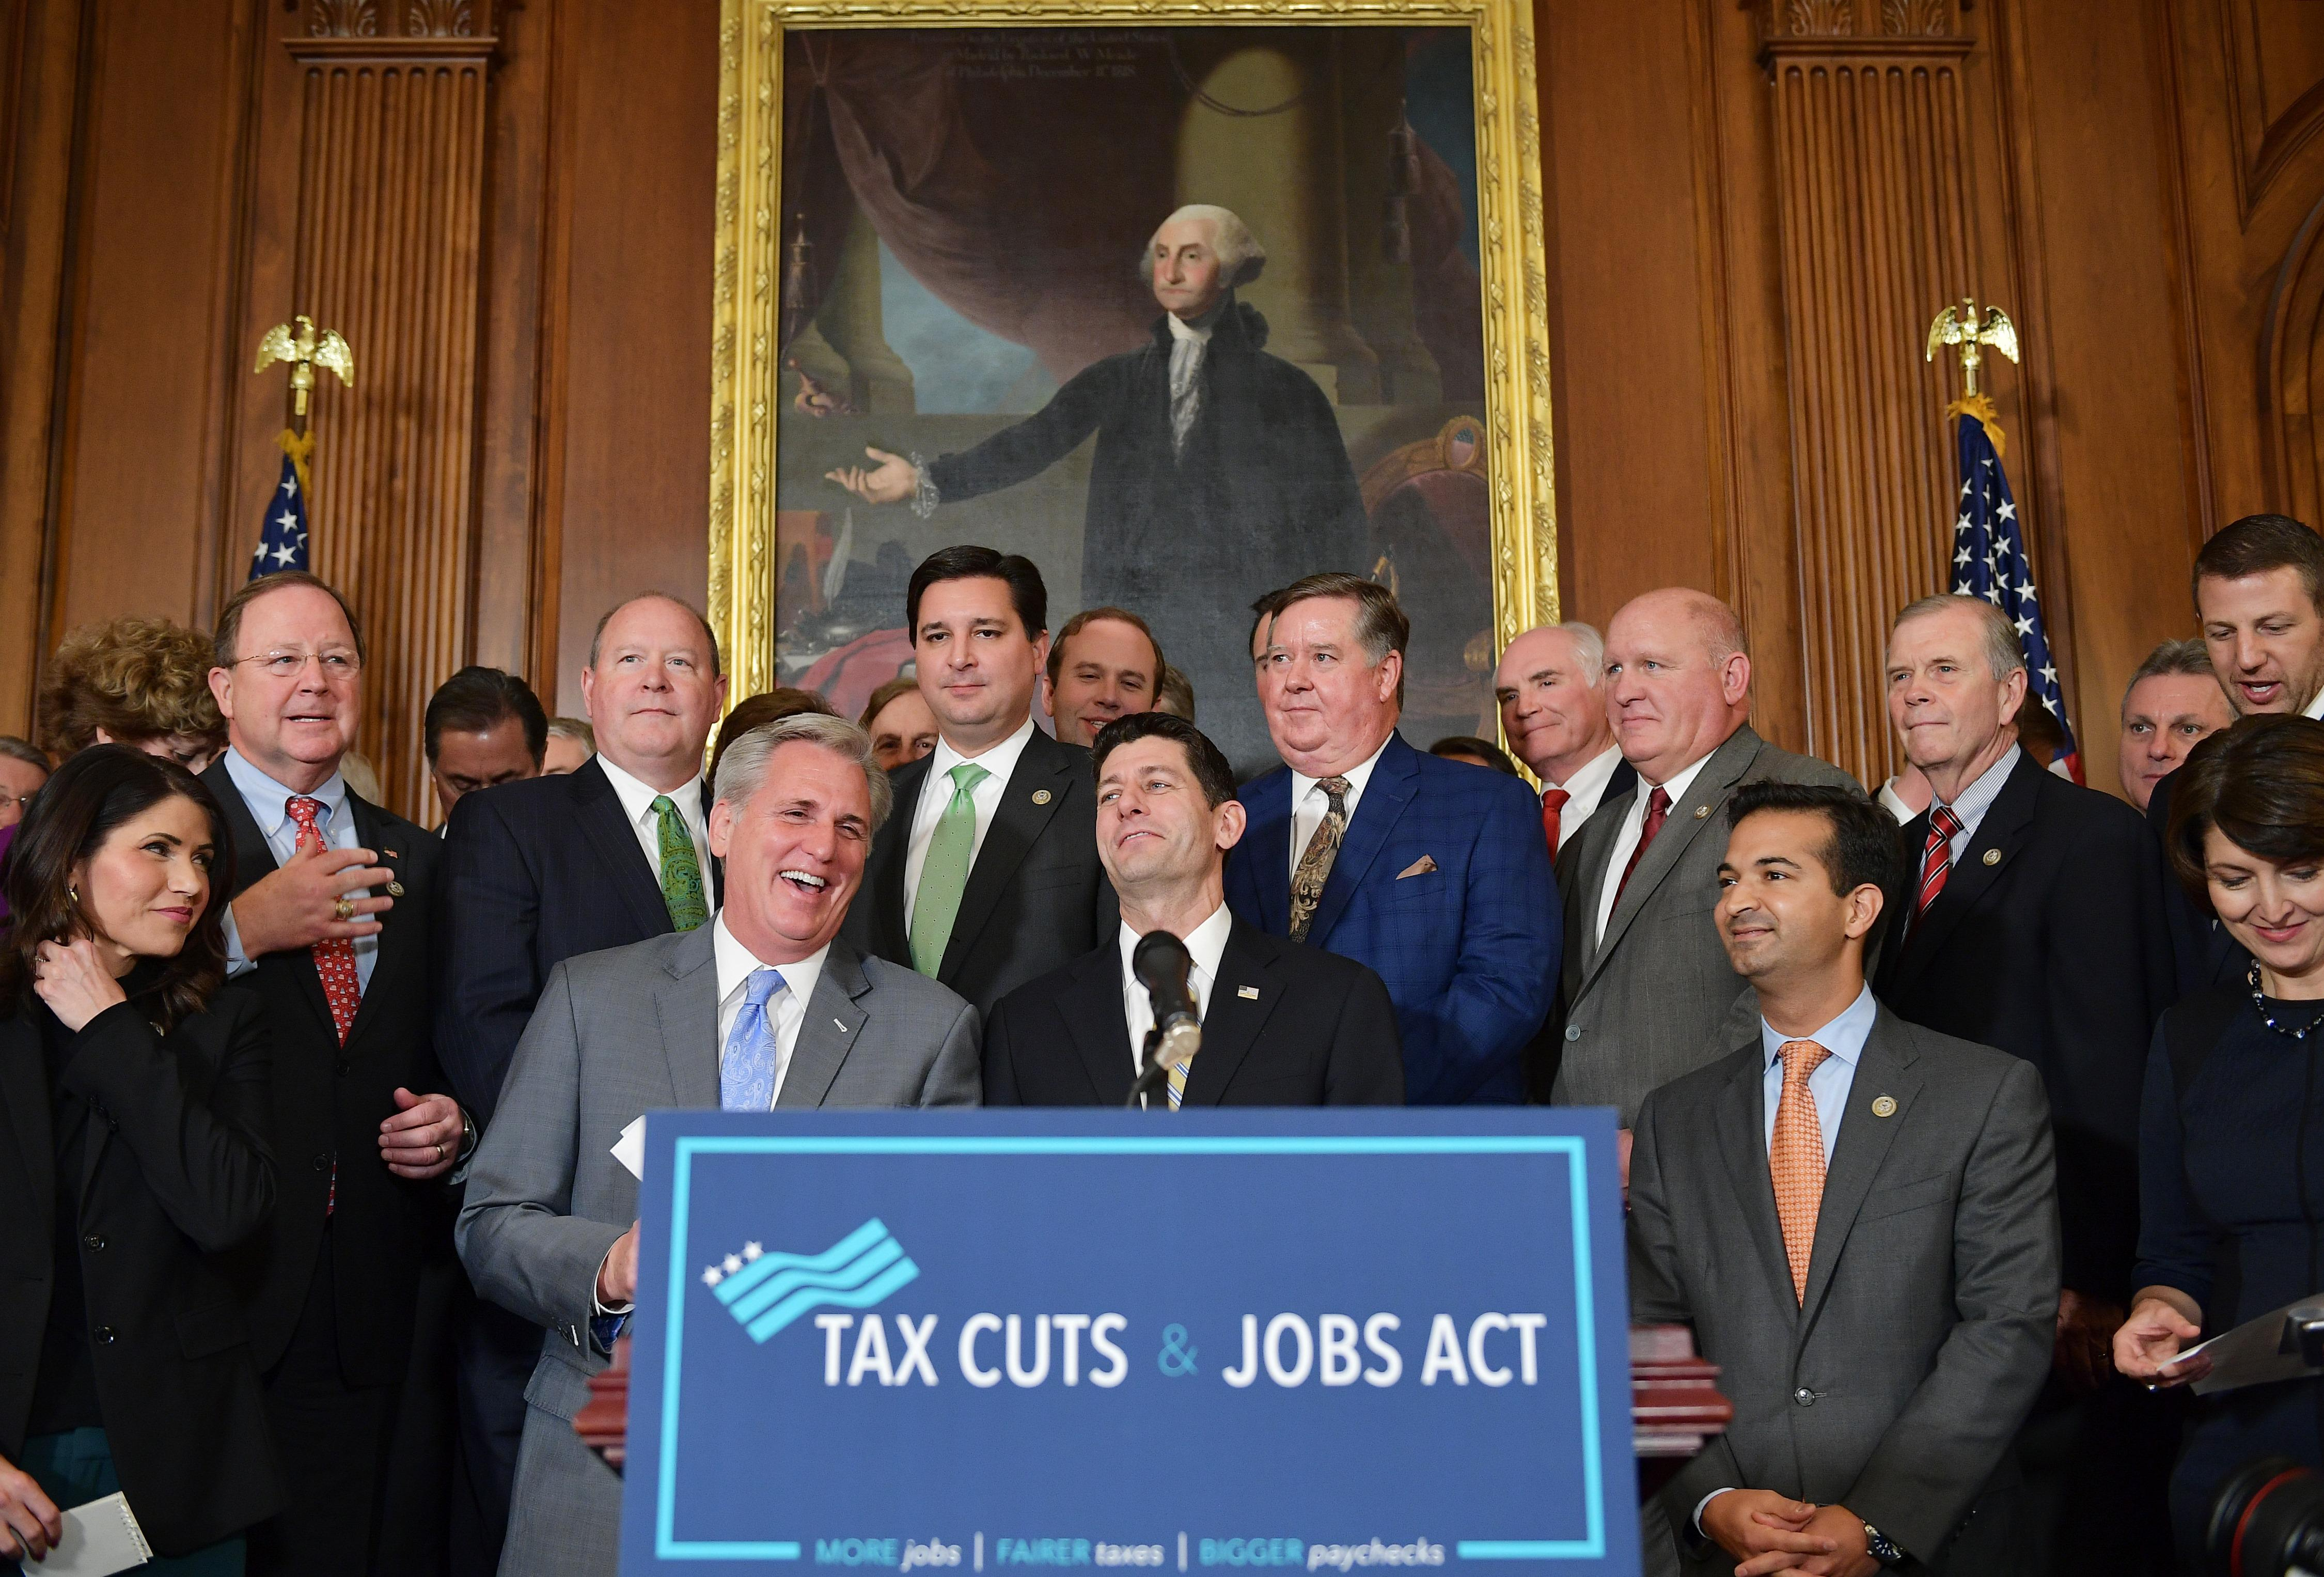 House Majority Leader Kevin, R-CA, laughs with House Speaker Paul Ryan, R-WI, during a press conference after the House passed its version of the Republican tax overhaul in the Rayburn Room of the US Capitol on November 16, 2017 in Washington, DC. / AFP PHOTO / MANDEL NGAN        (Photo credit should read MANDEL NGAN/AFP/Getty Images)